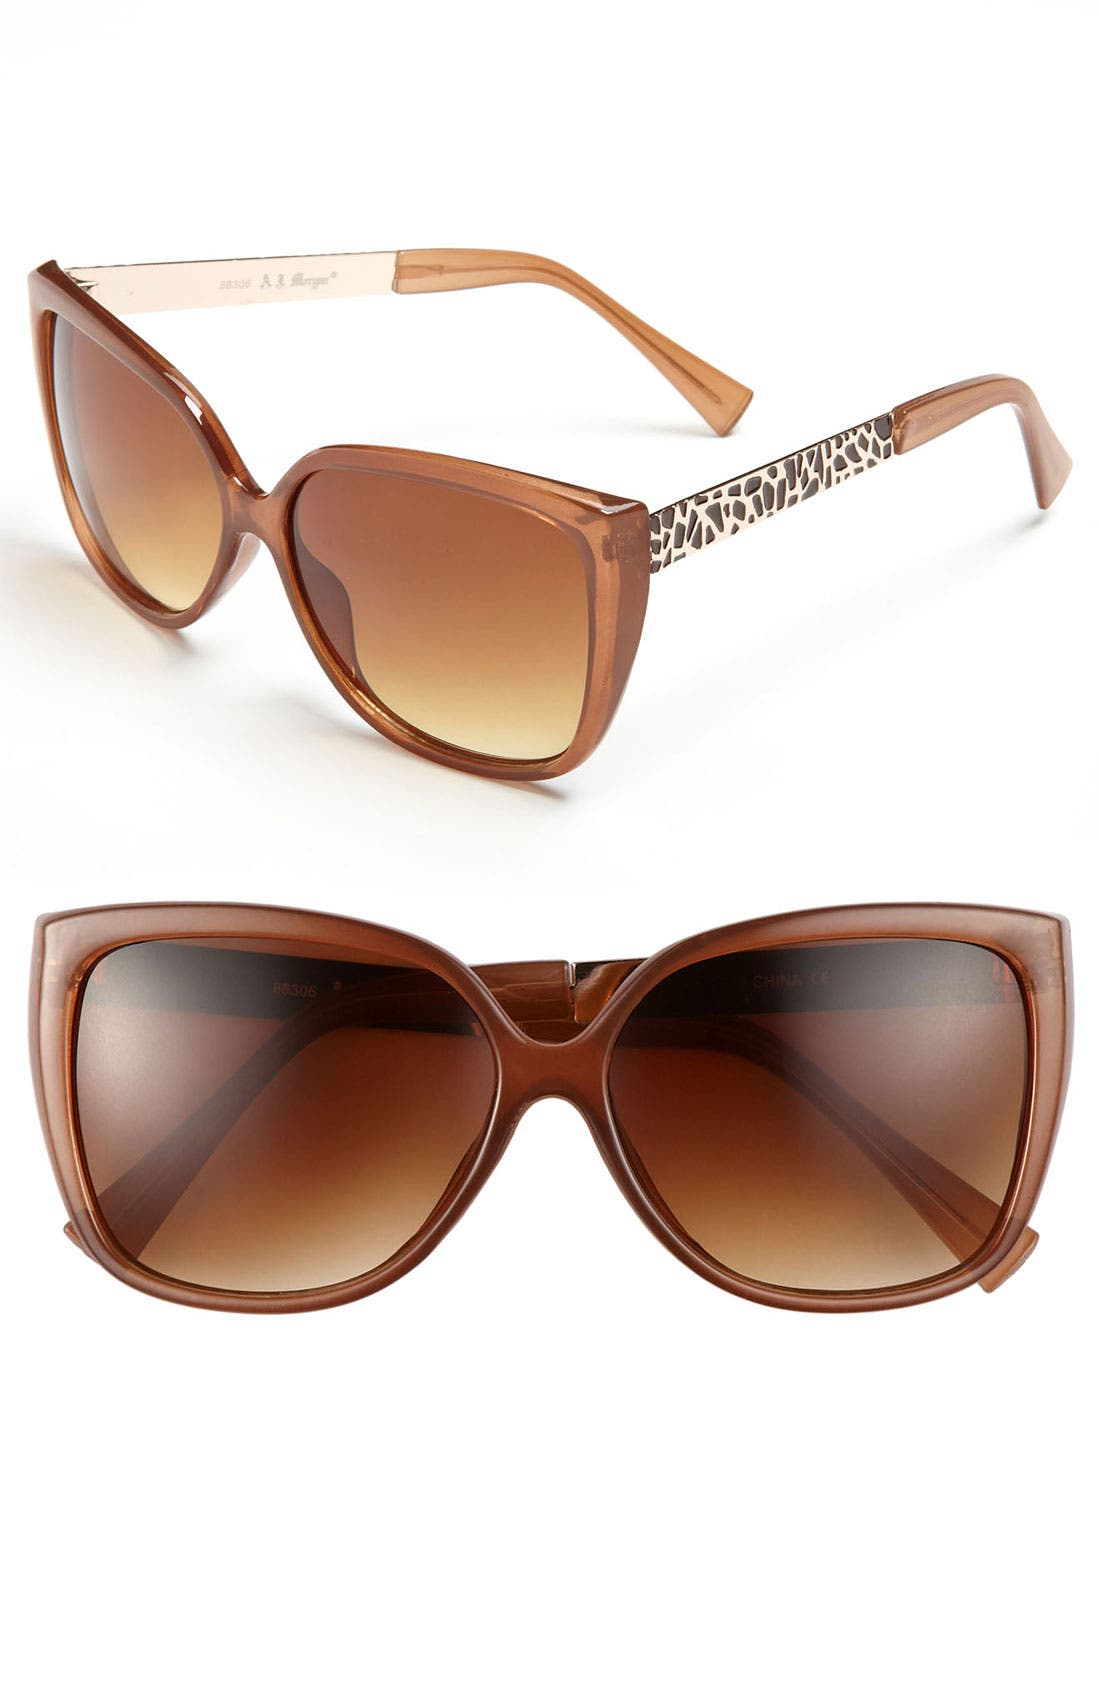 Main Image - A.J. Morgan Retro Sunglasses